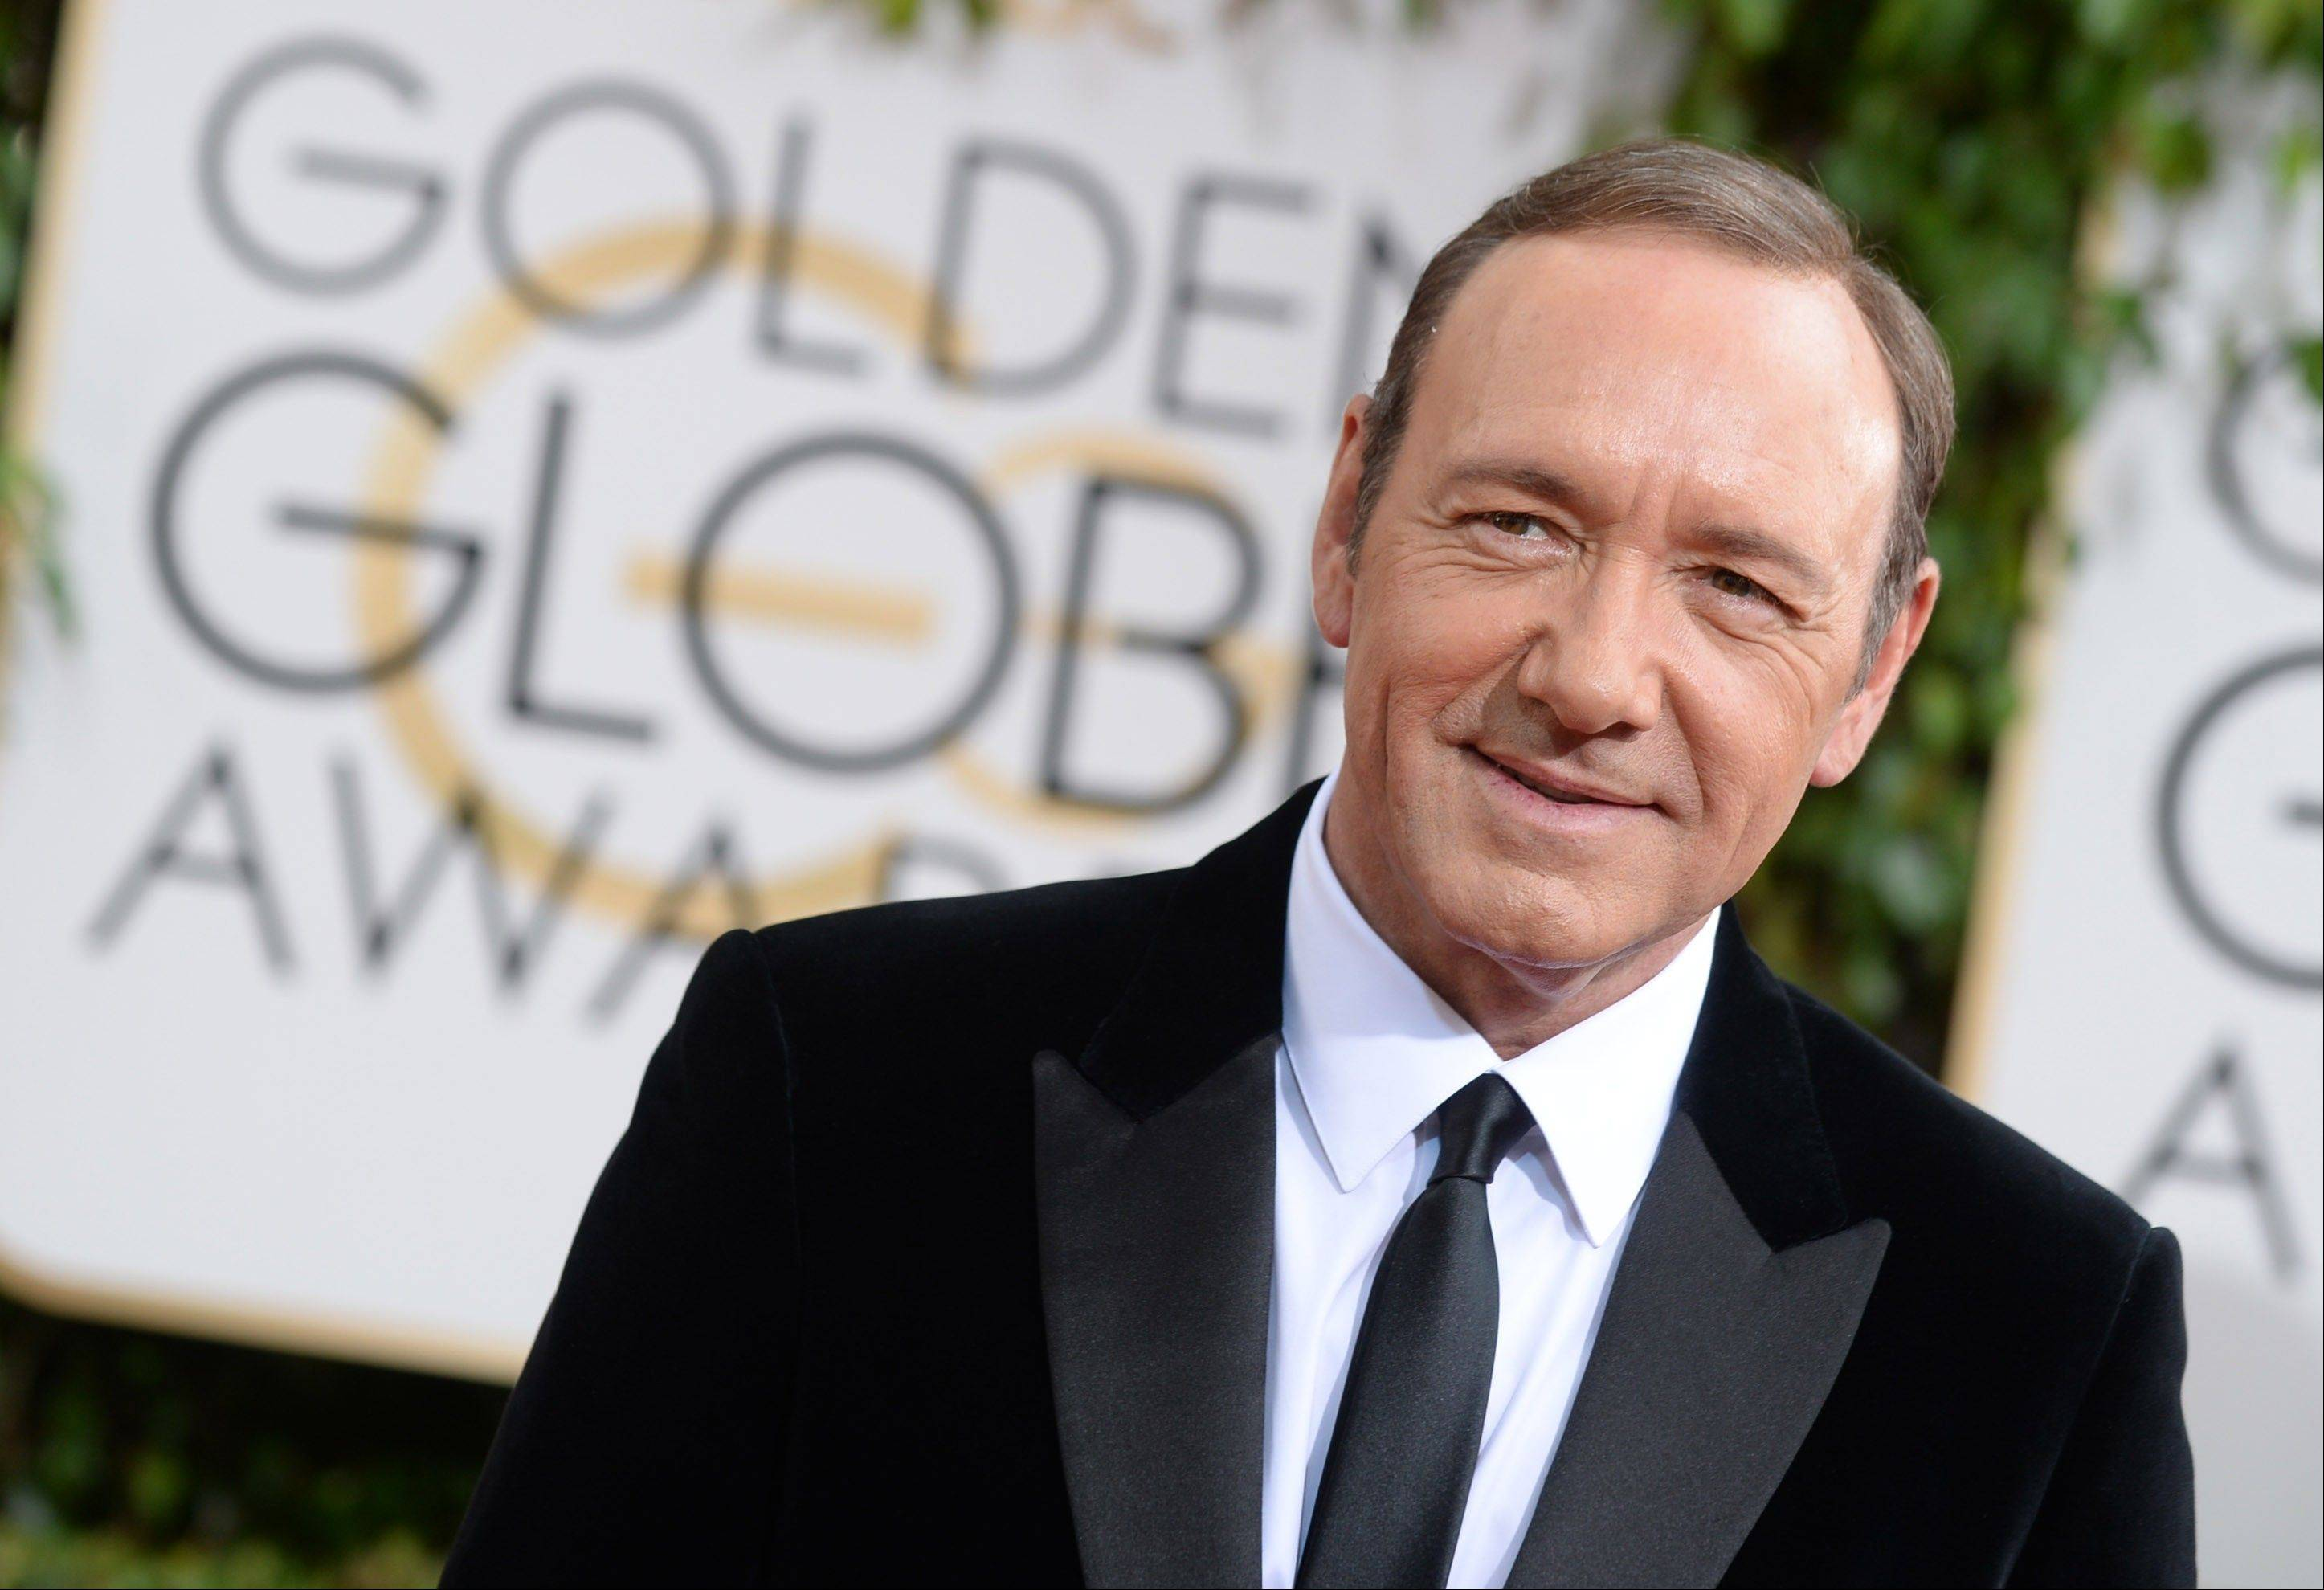 """House of Cards"" star Kevin Spacey arrives at the 71st annual Golden Globe Awards."